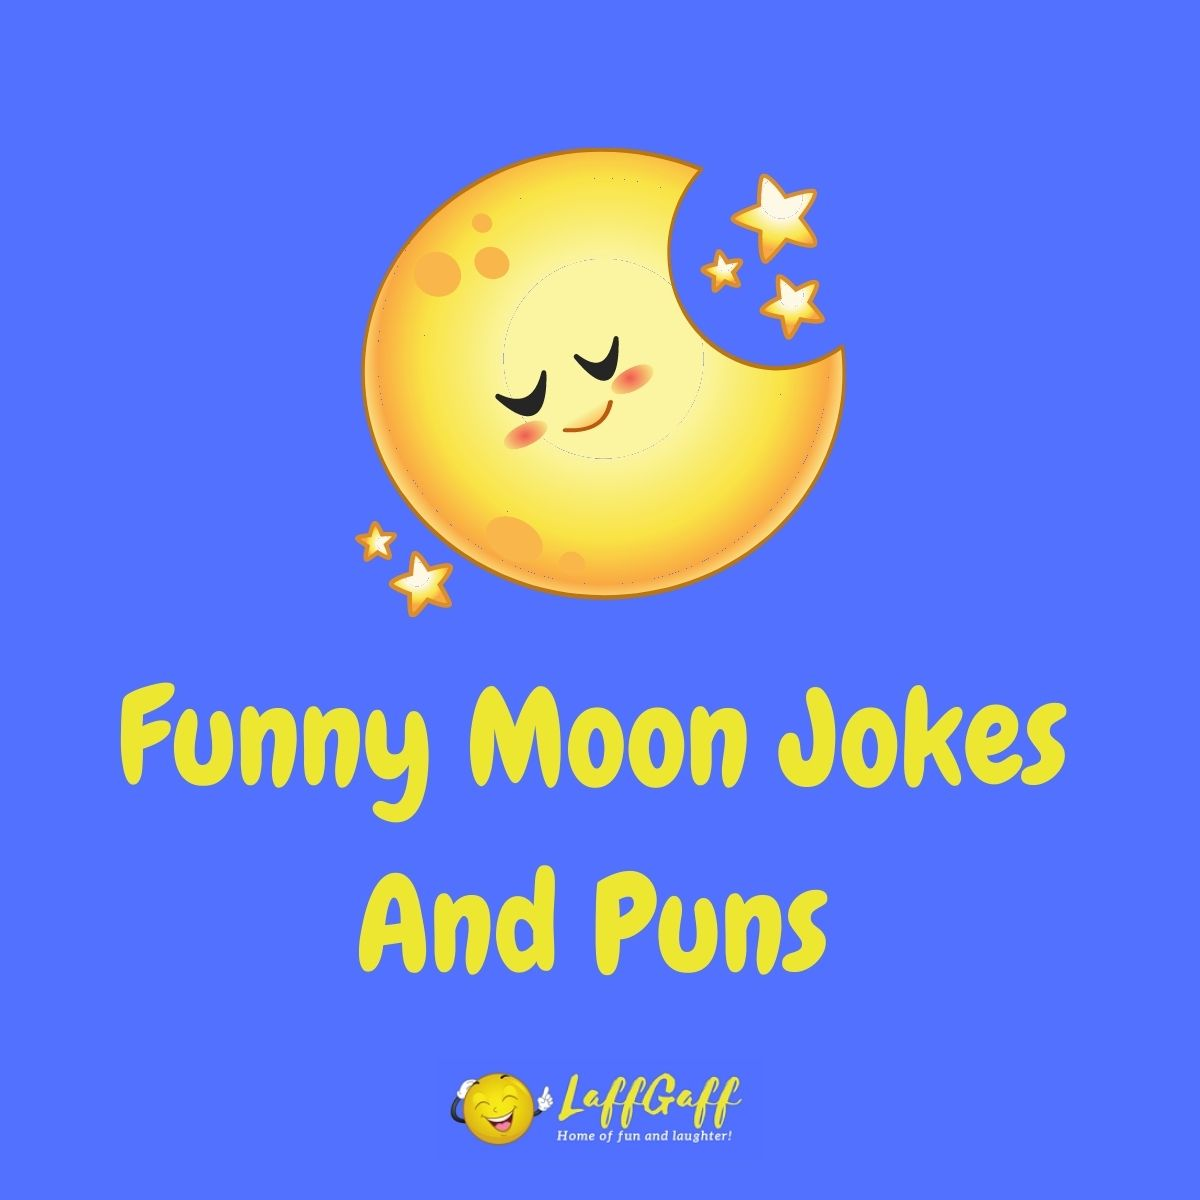 Featured image for a page of funny moon jokes and puns.